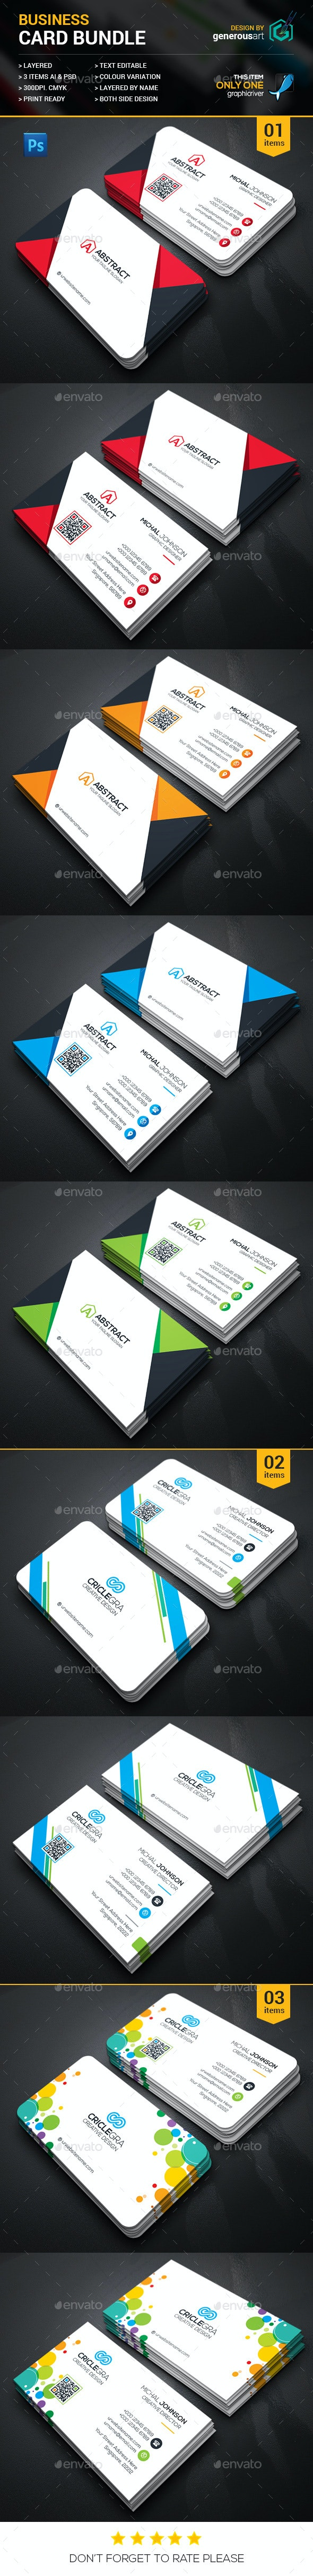 Business Card Bundle 3 in _1 - Corporate Business Cards